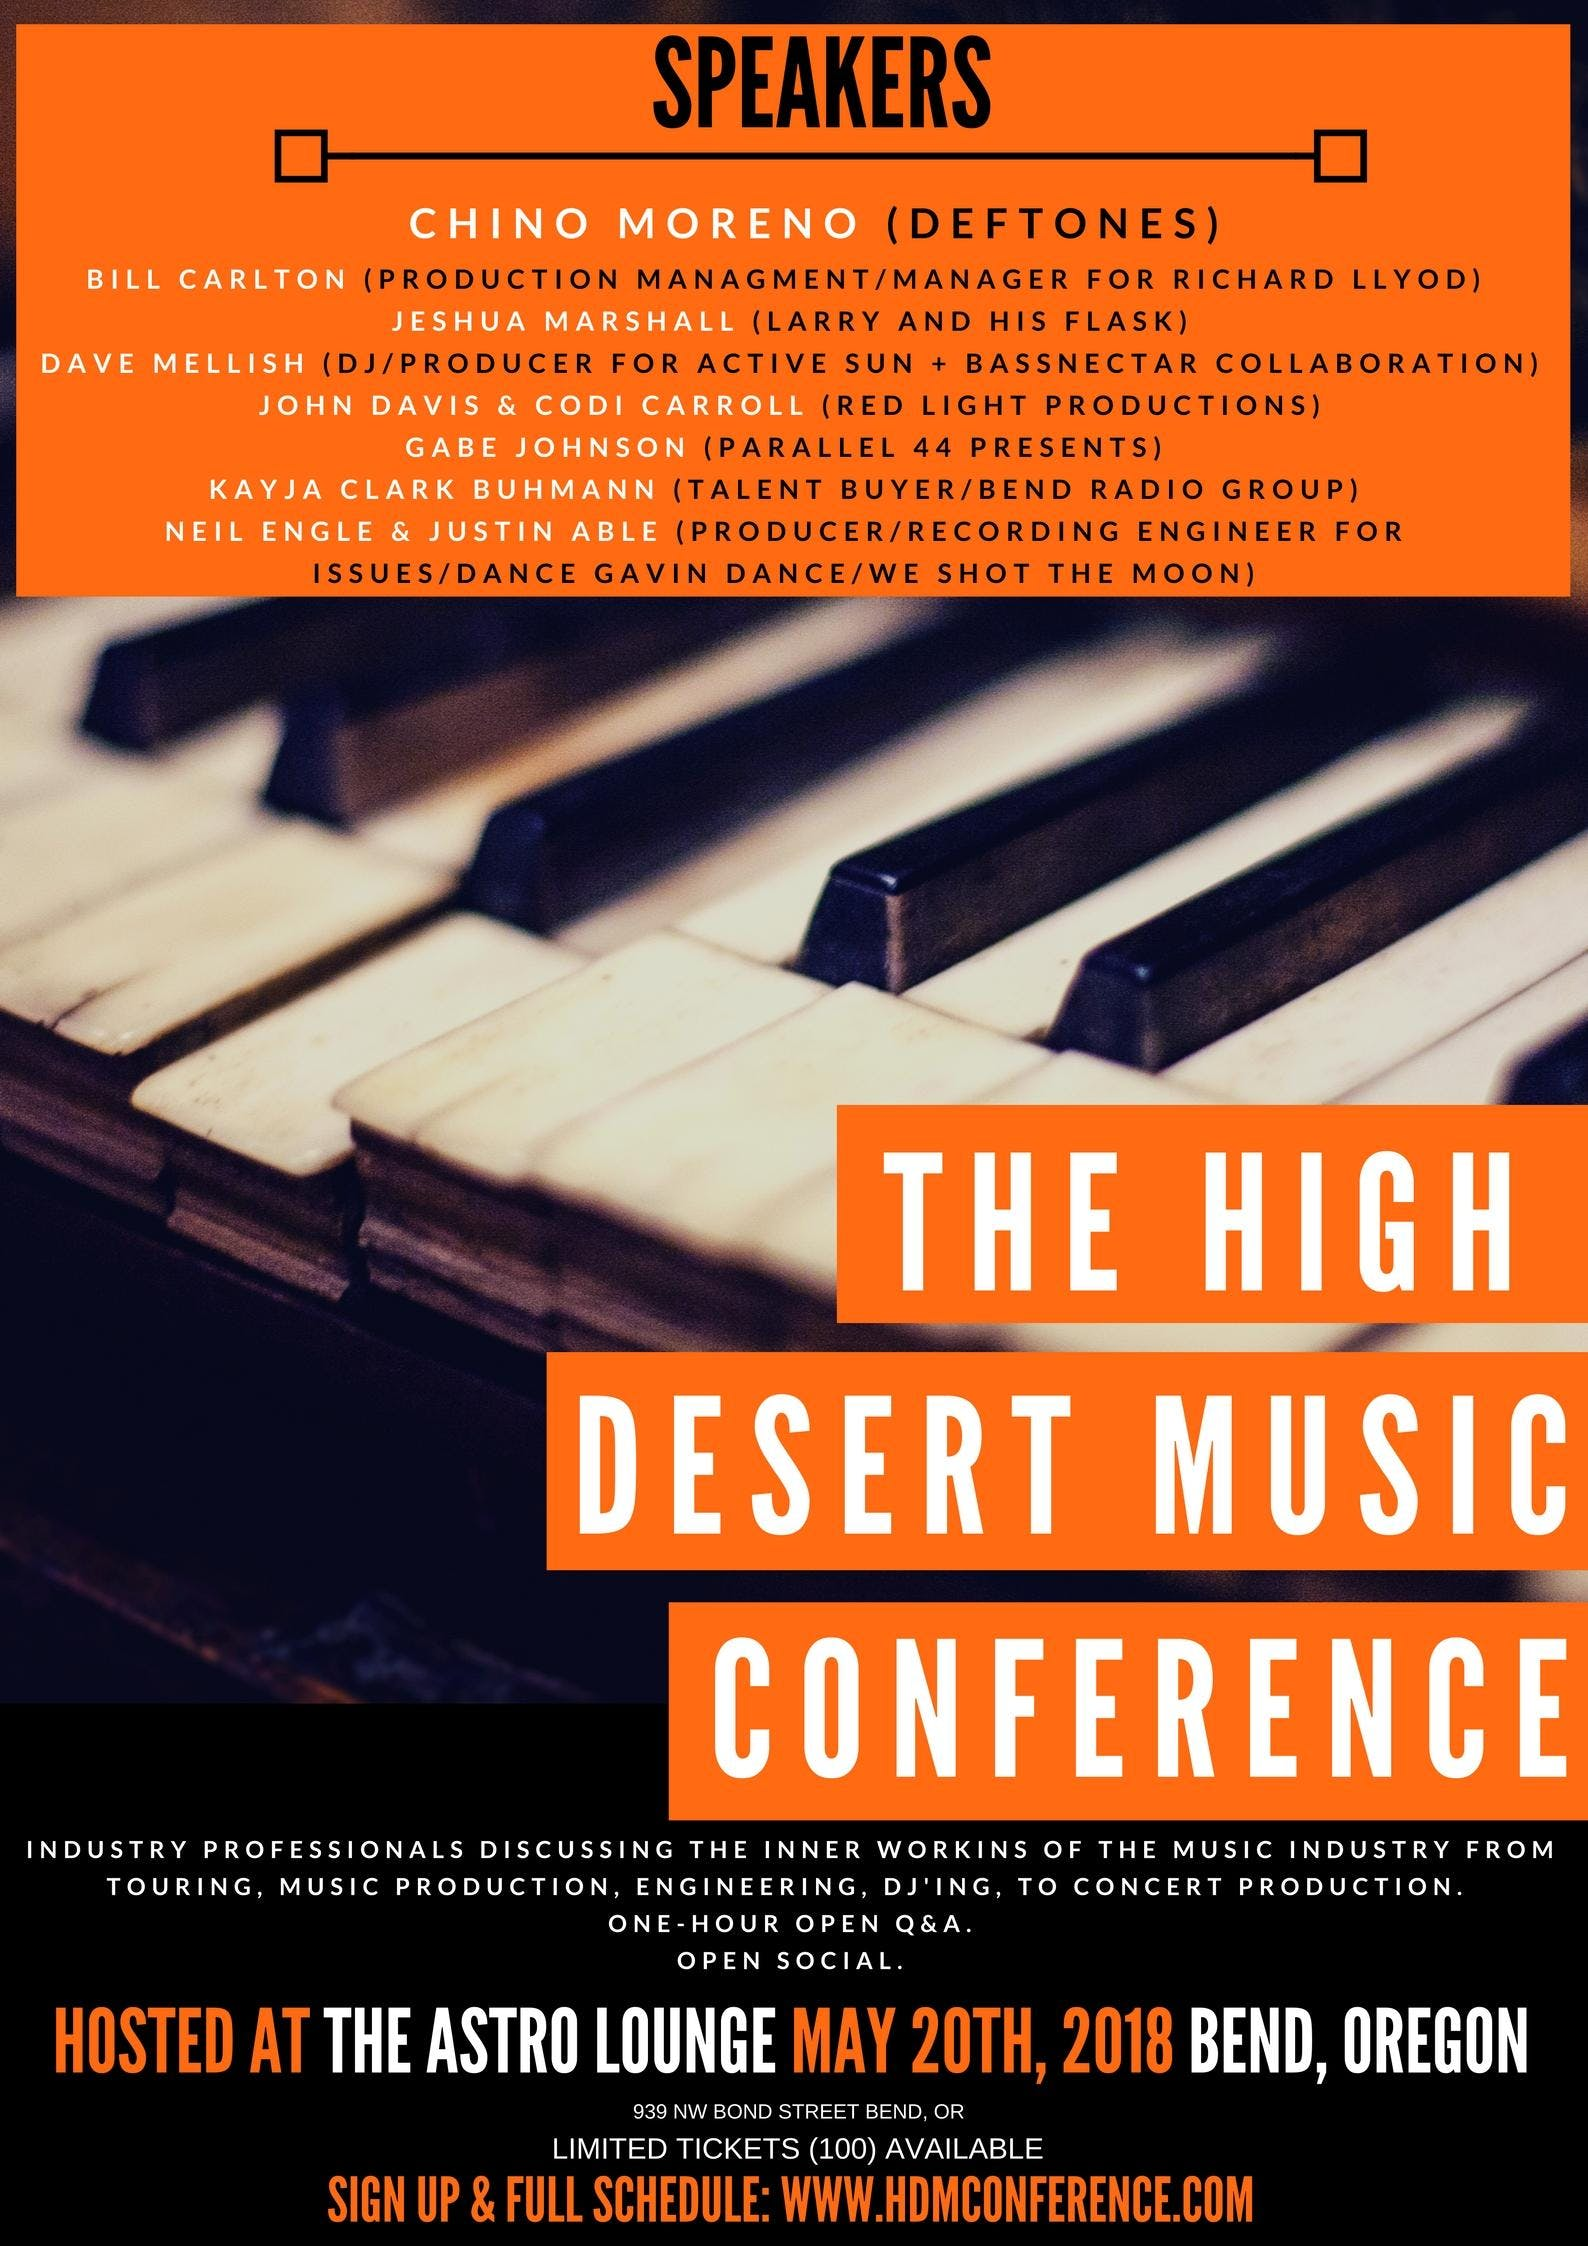 The High Desert Music Conference